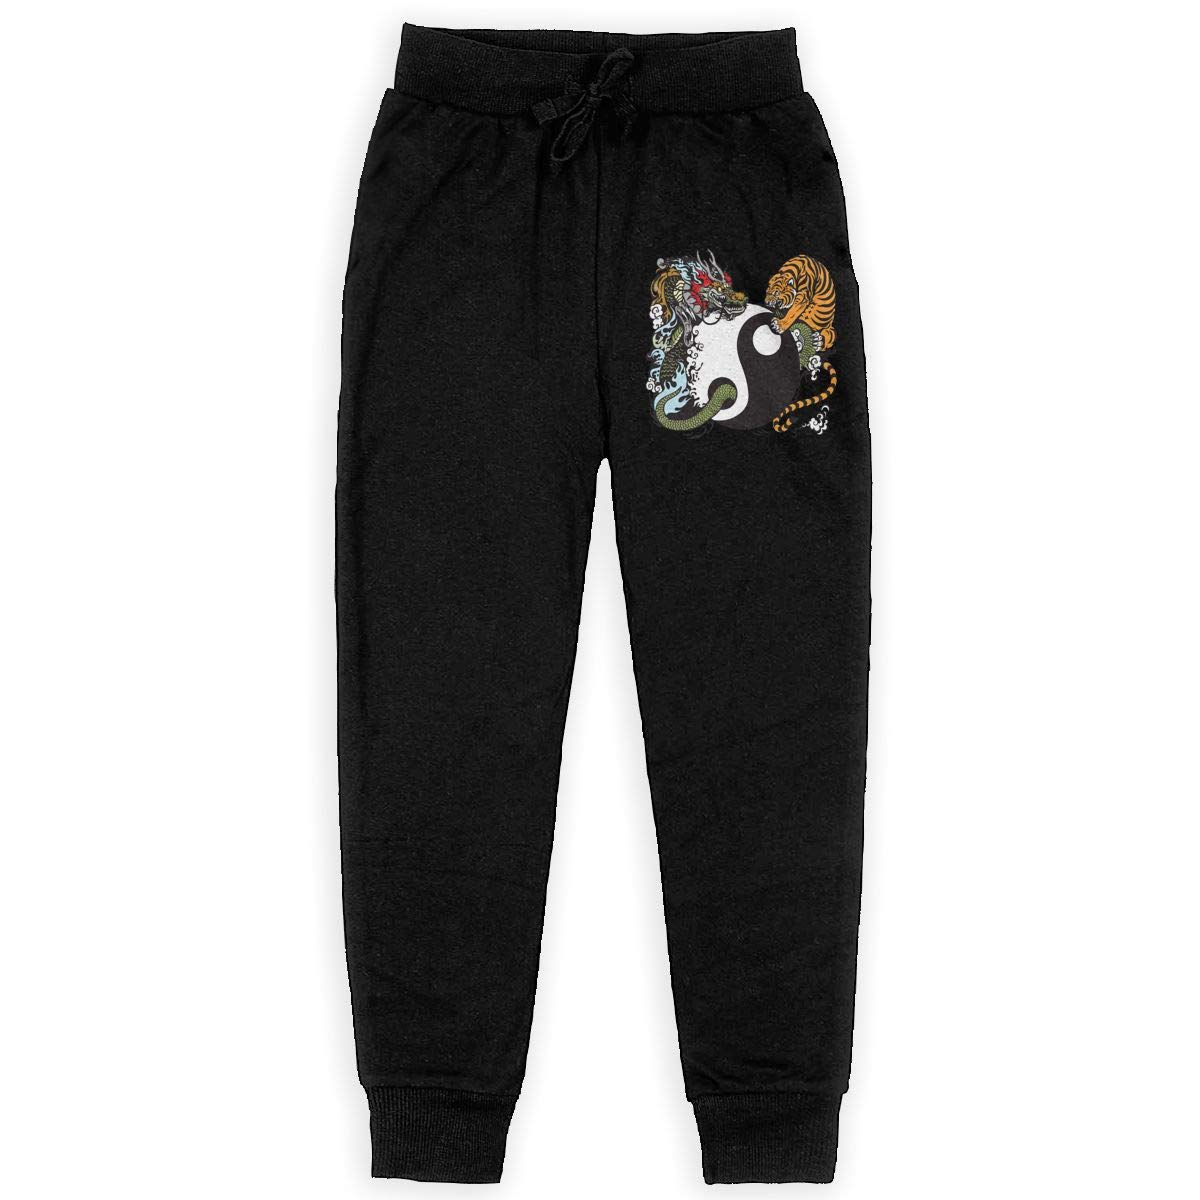 Dragon/&Tiger Boys Athletic Smart Fleece Pant Youth Soft and Cozy Sweatpants